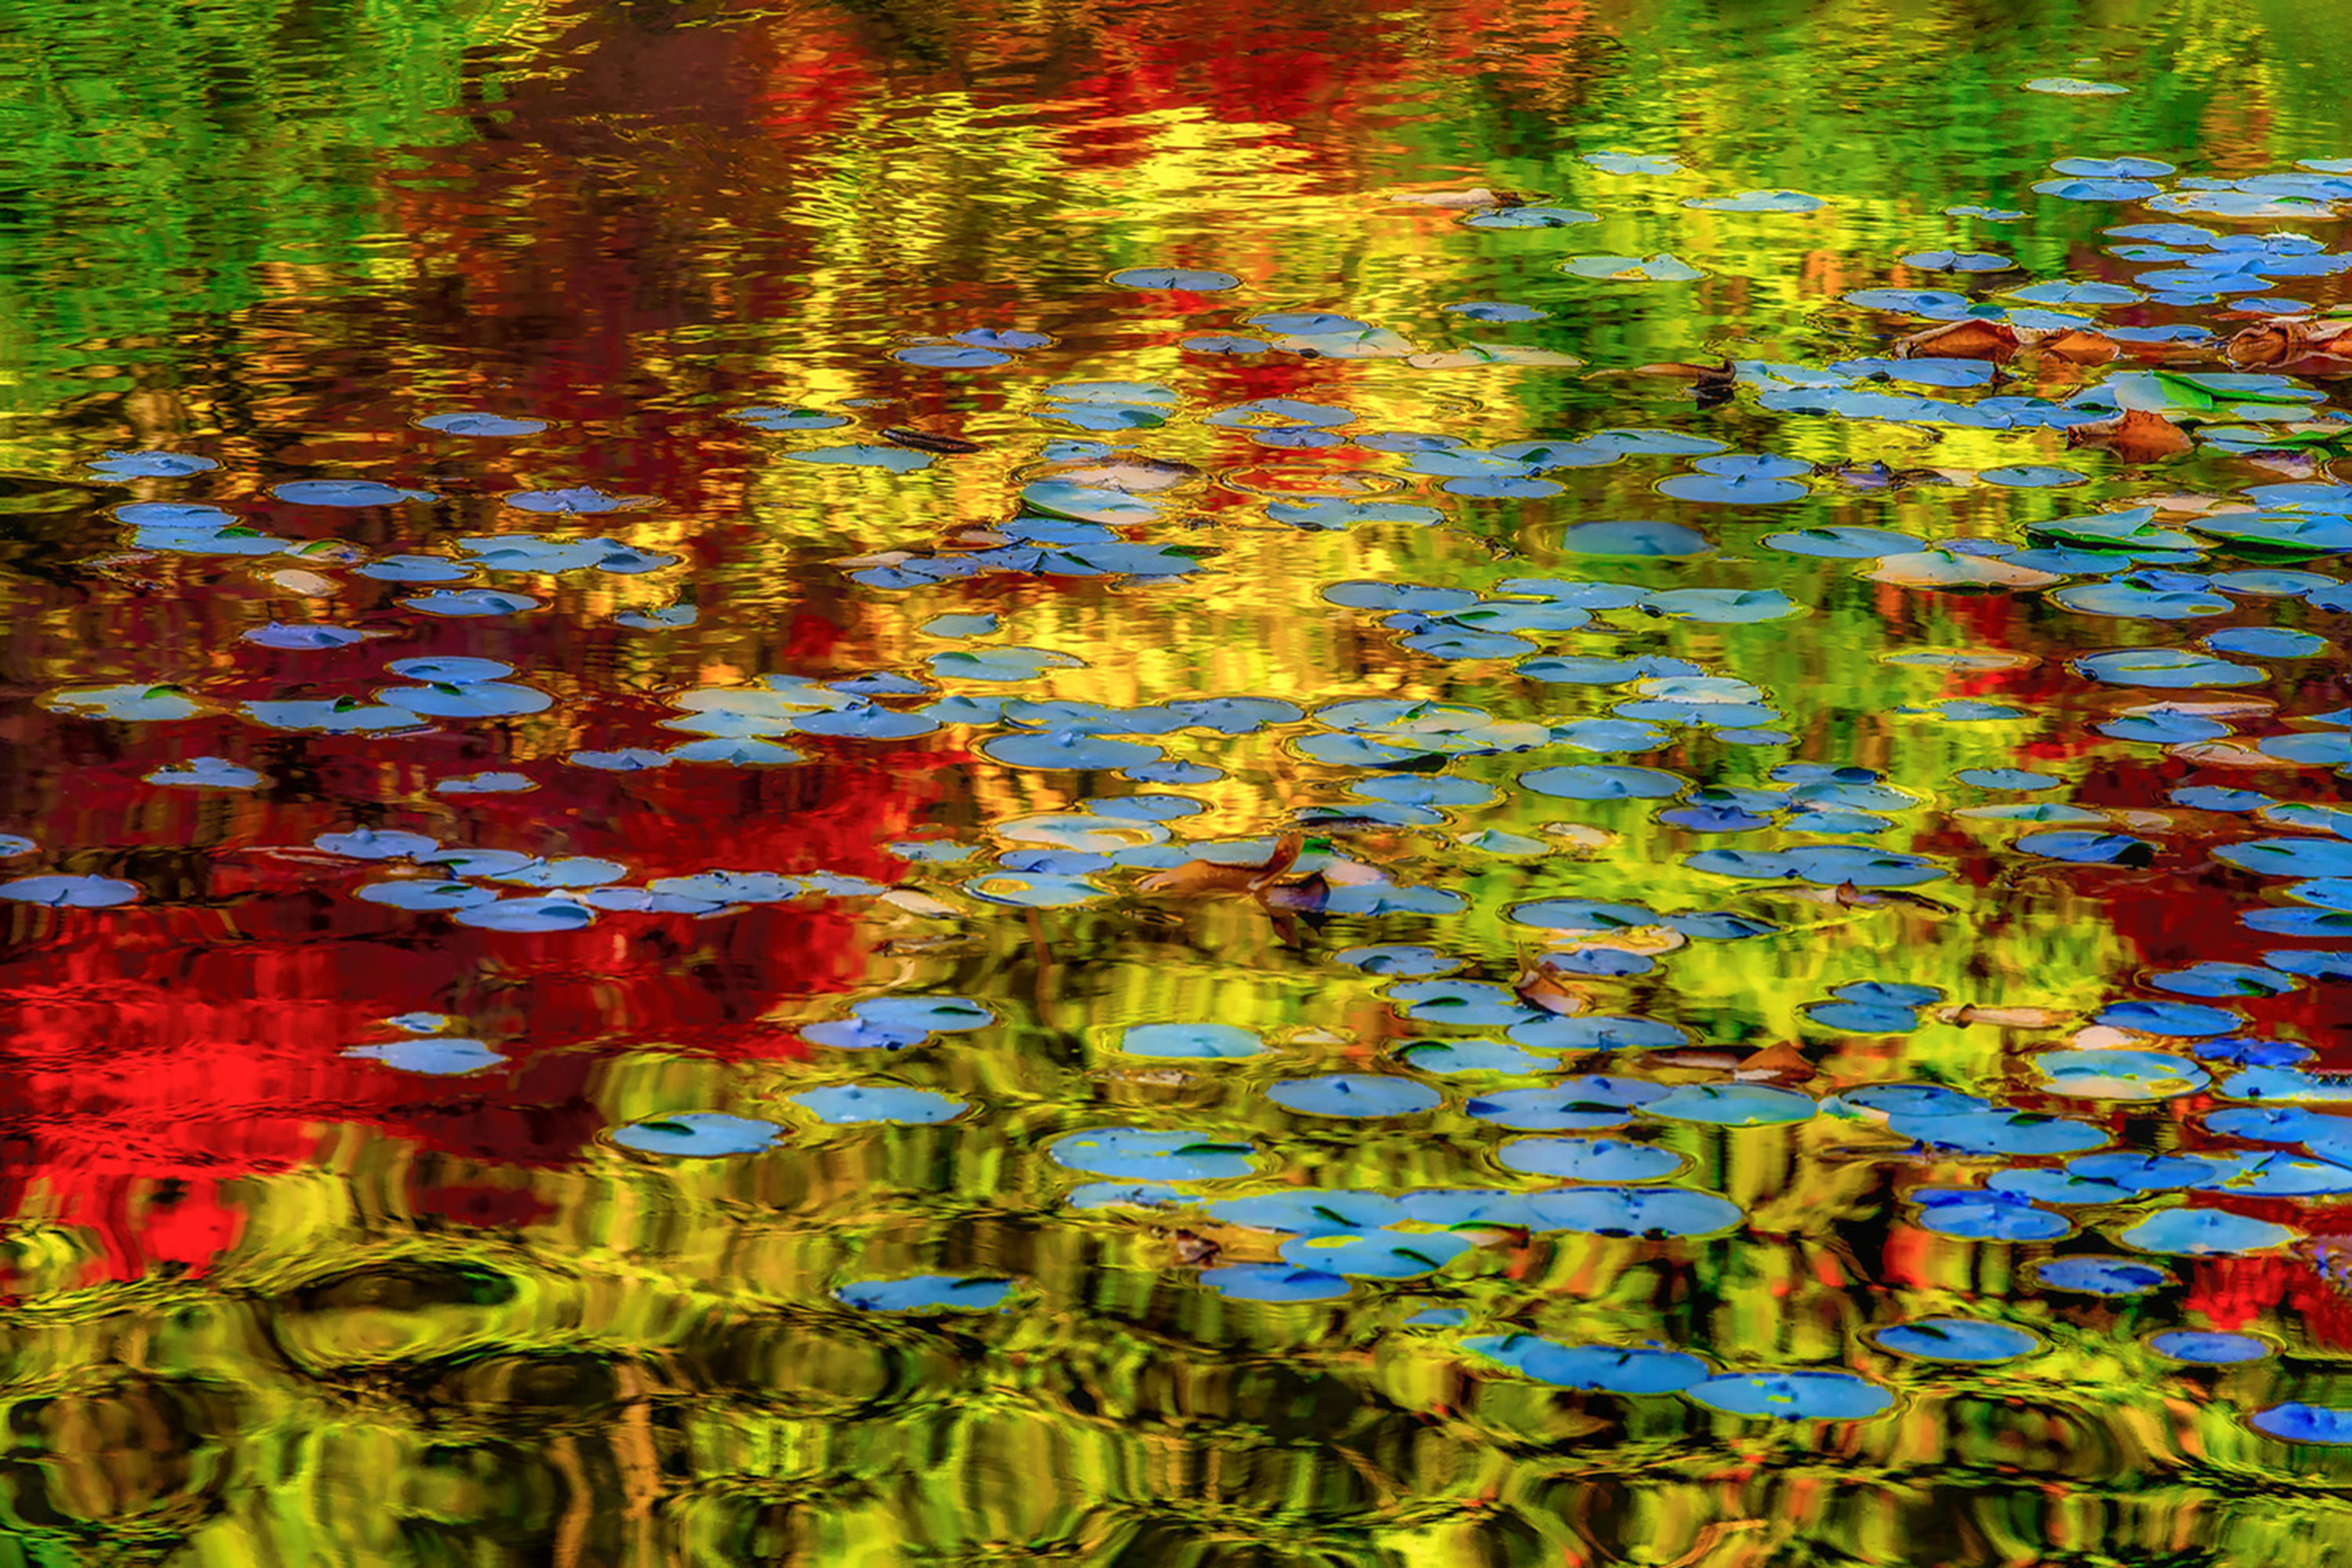 Lily Pond 1 artwork by Tim Thompson - art listed for sale on Artplode